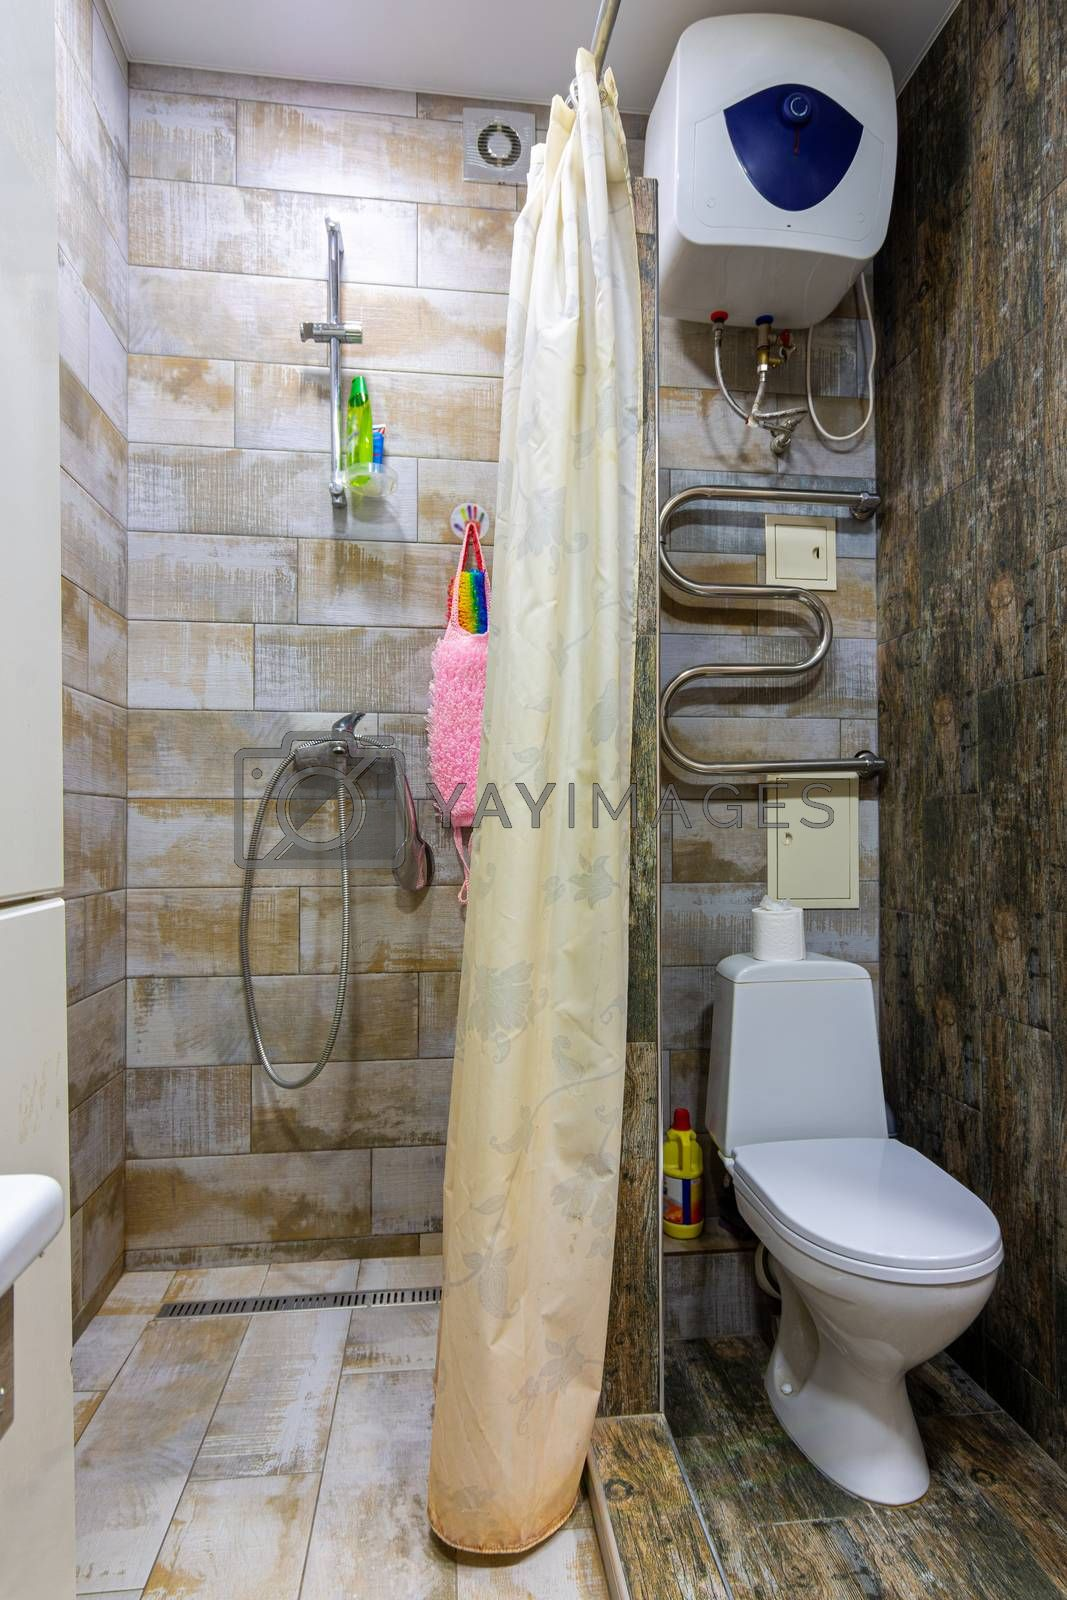 Small compact bathroom divided with shower curtain and toilet